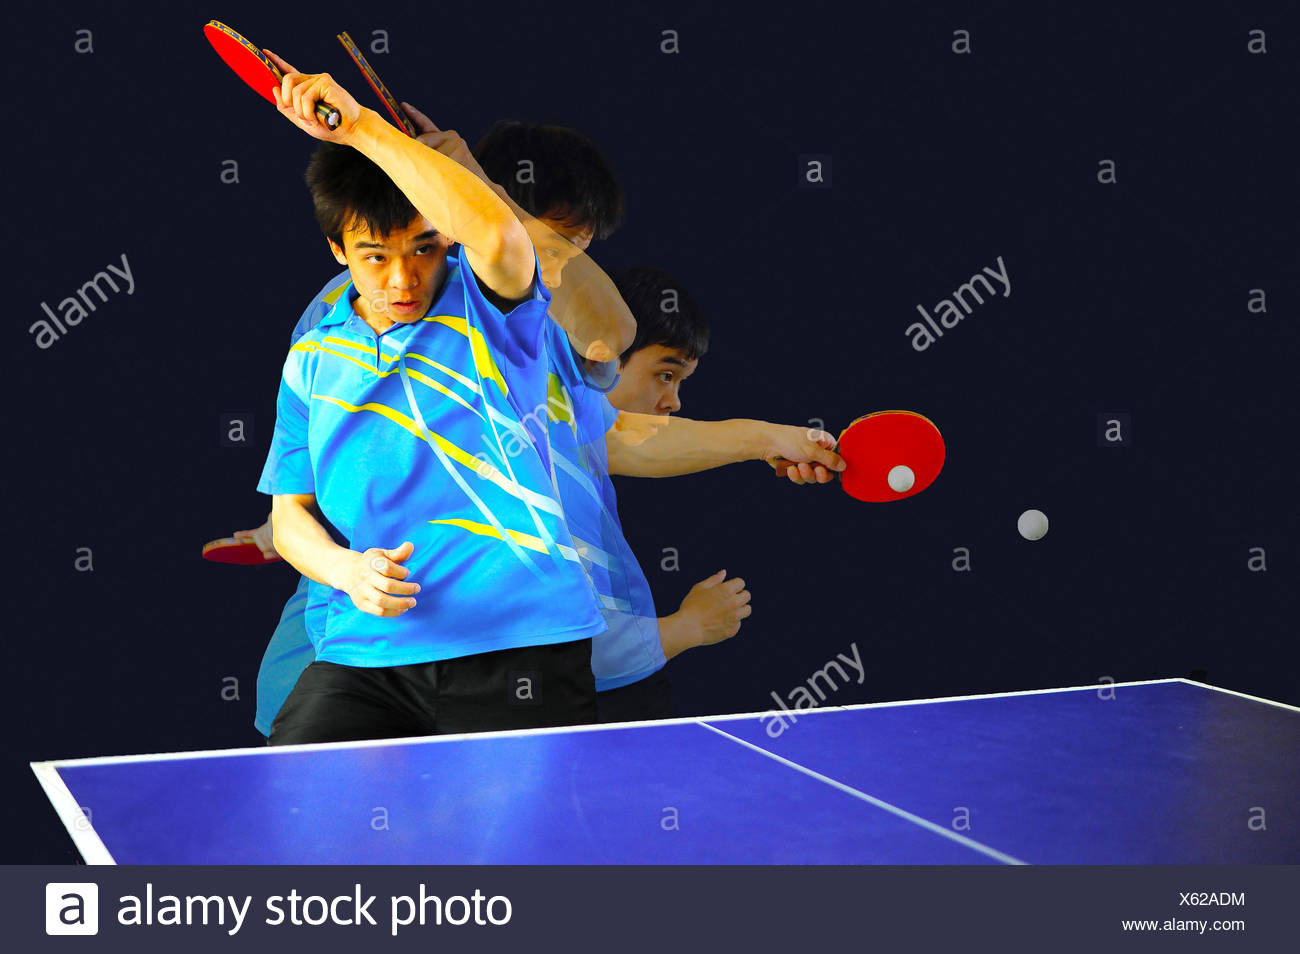 Ping-pong Immagini Stock